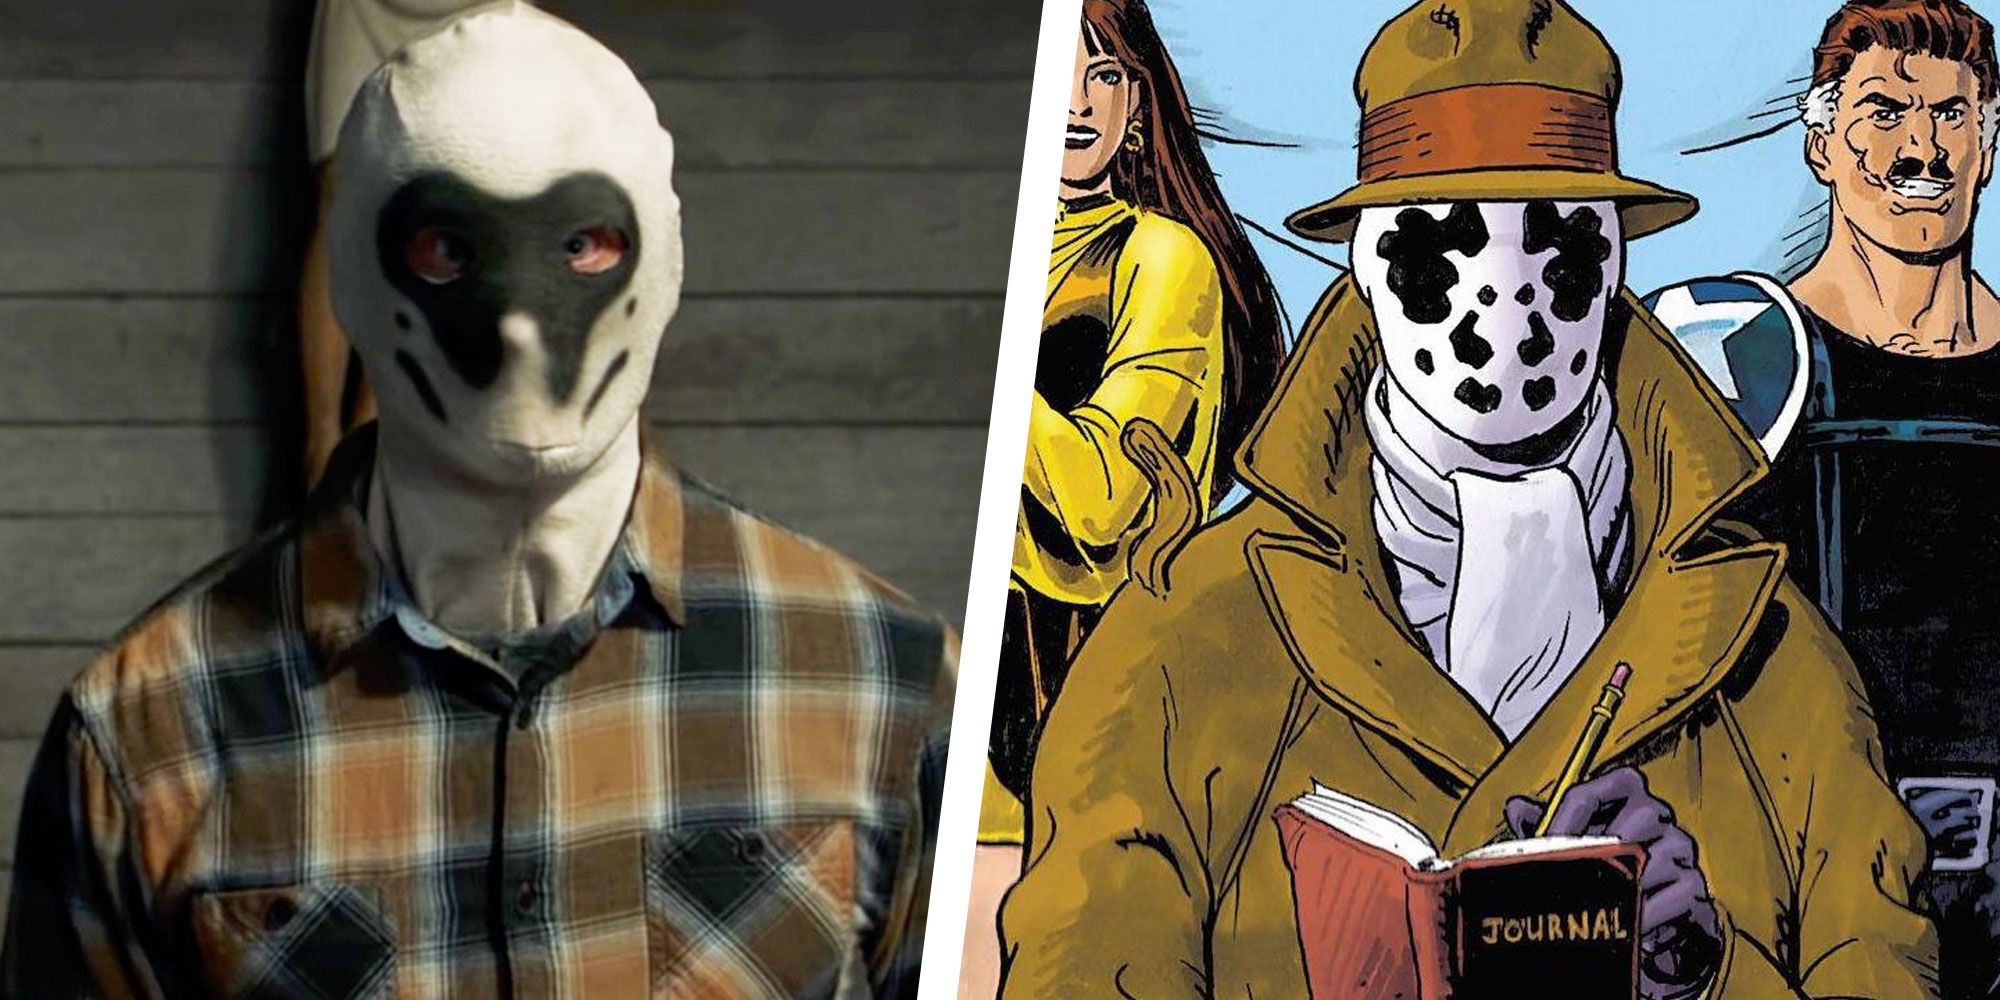 Here's Why the Rorschach Group is Attacking Cops in 'Watchmen'